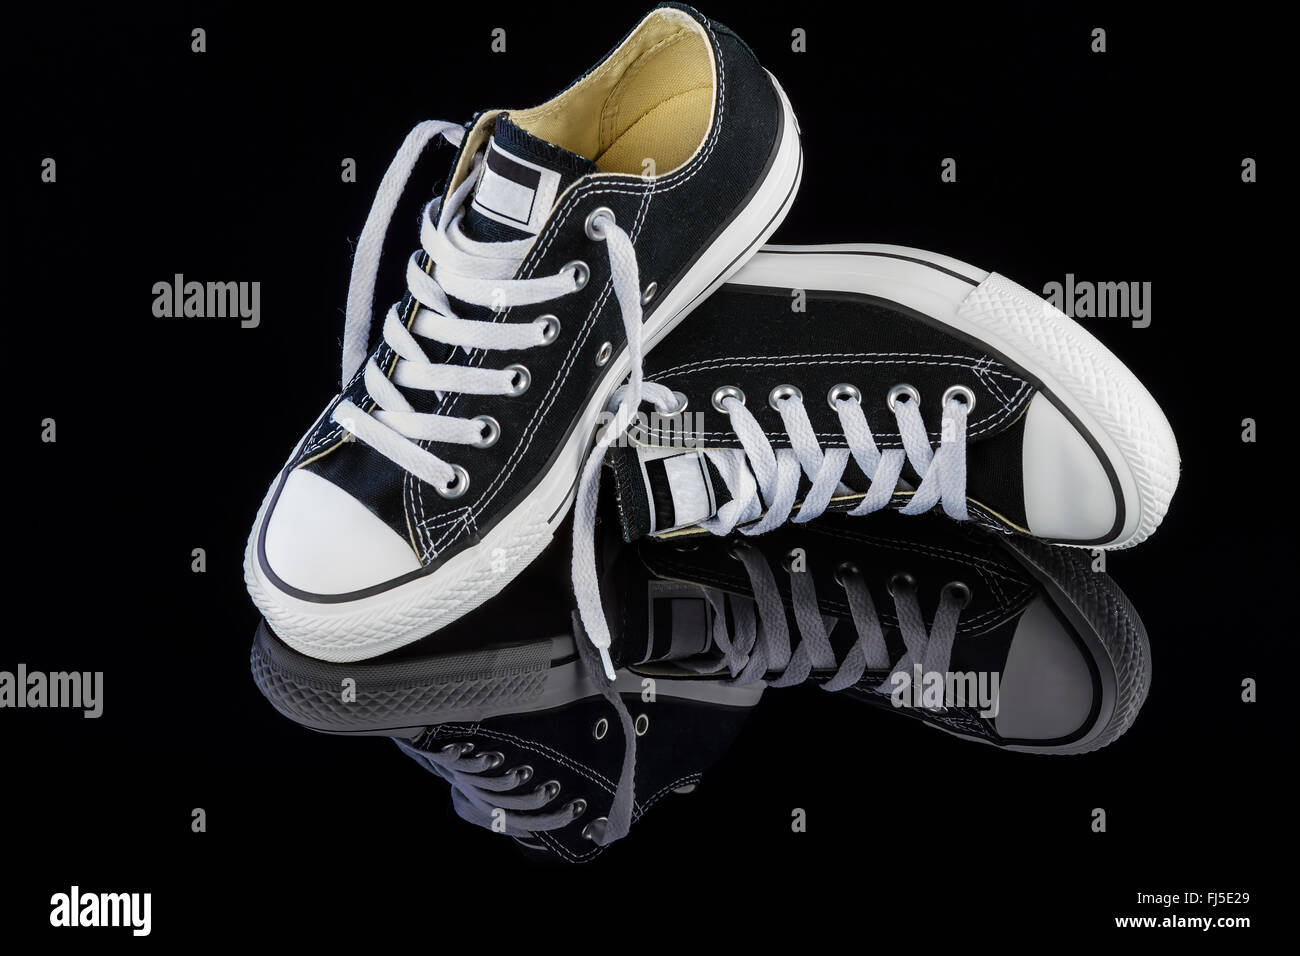 Black sneakers on black background - Stock Image